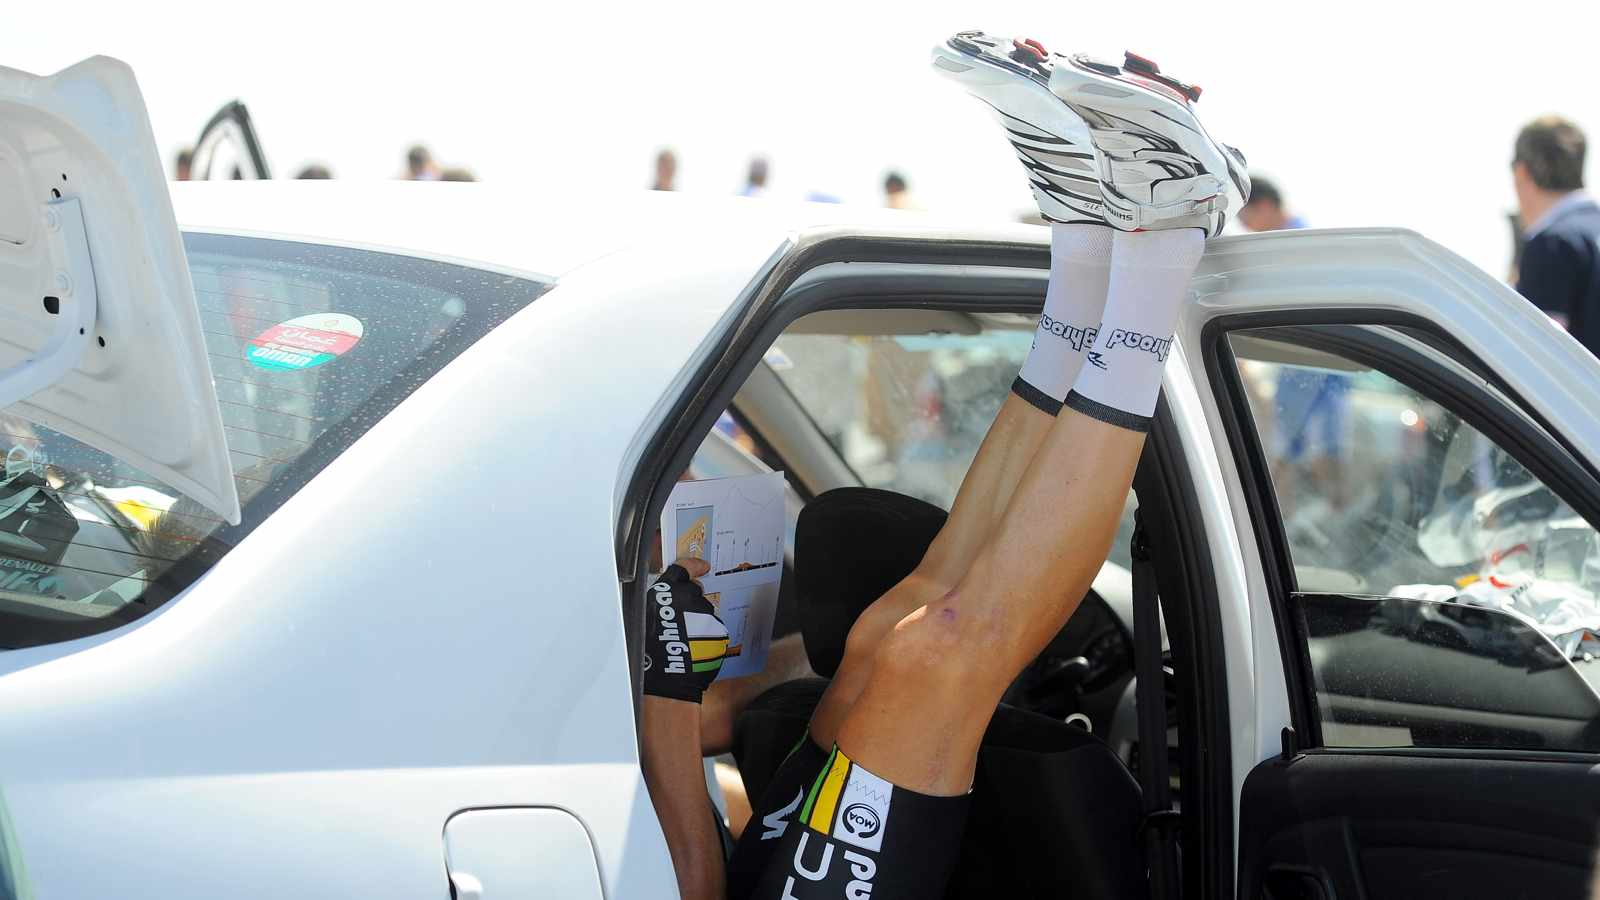 Have you been doing a lot of hard rides? Maybe it's time to put your feet up for a while